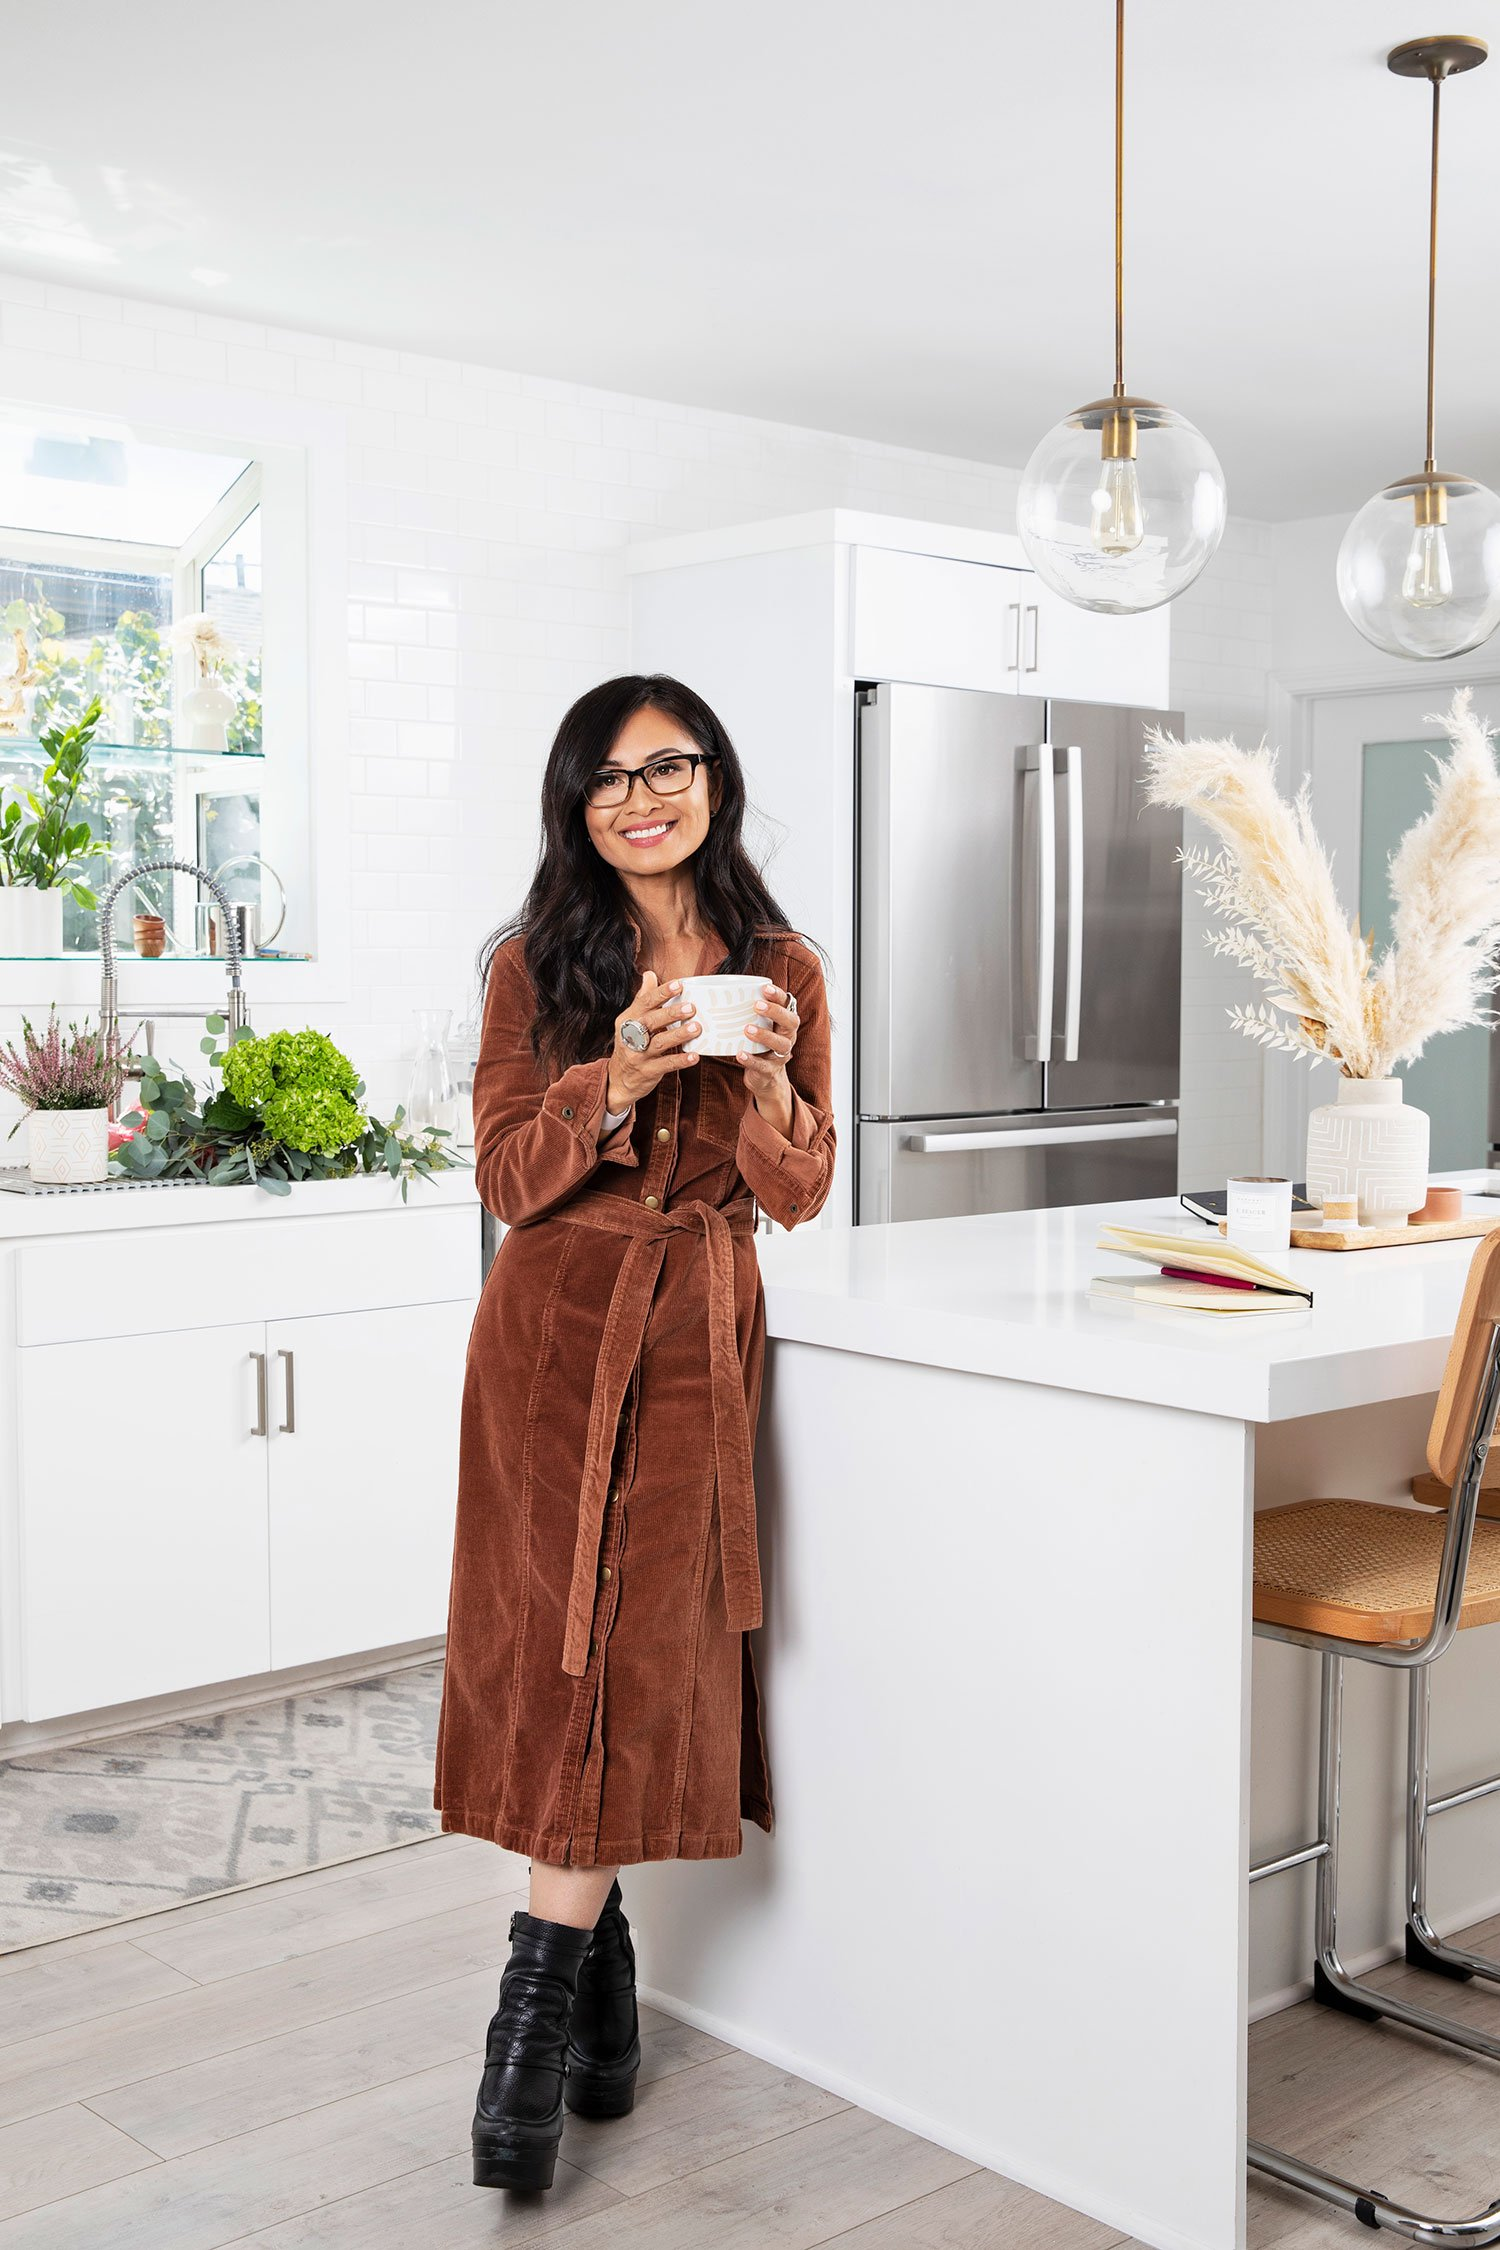 Are you a coffee person or a tea person? - Kalika Yap